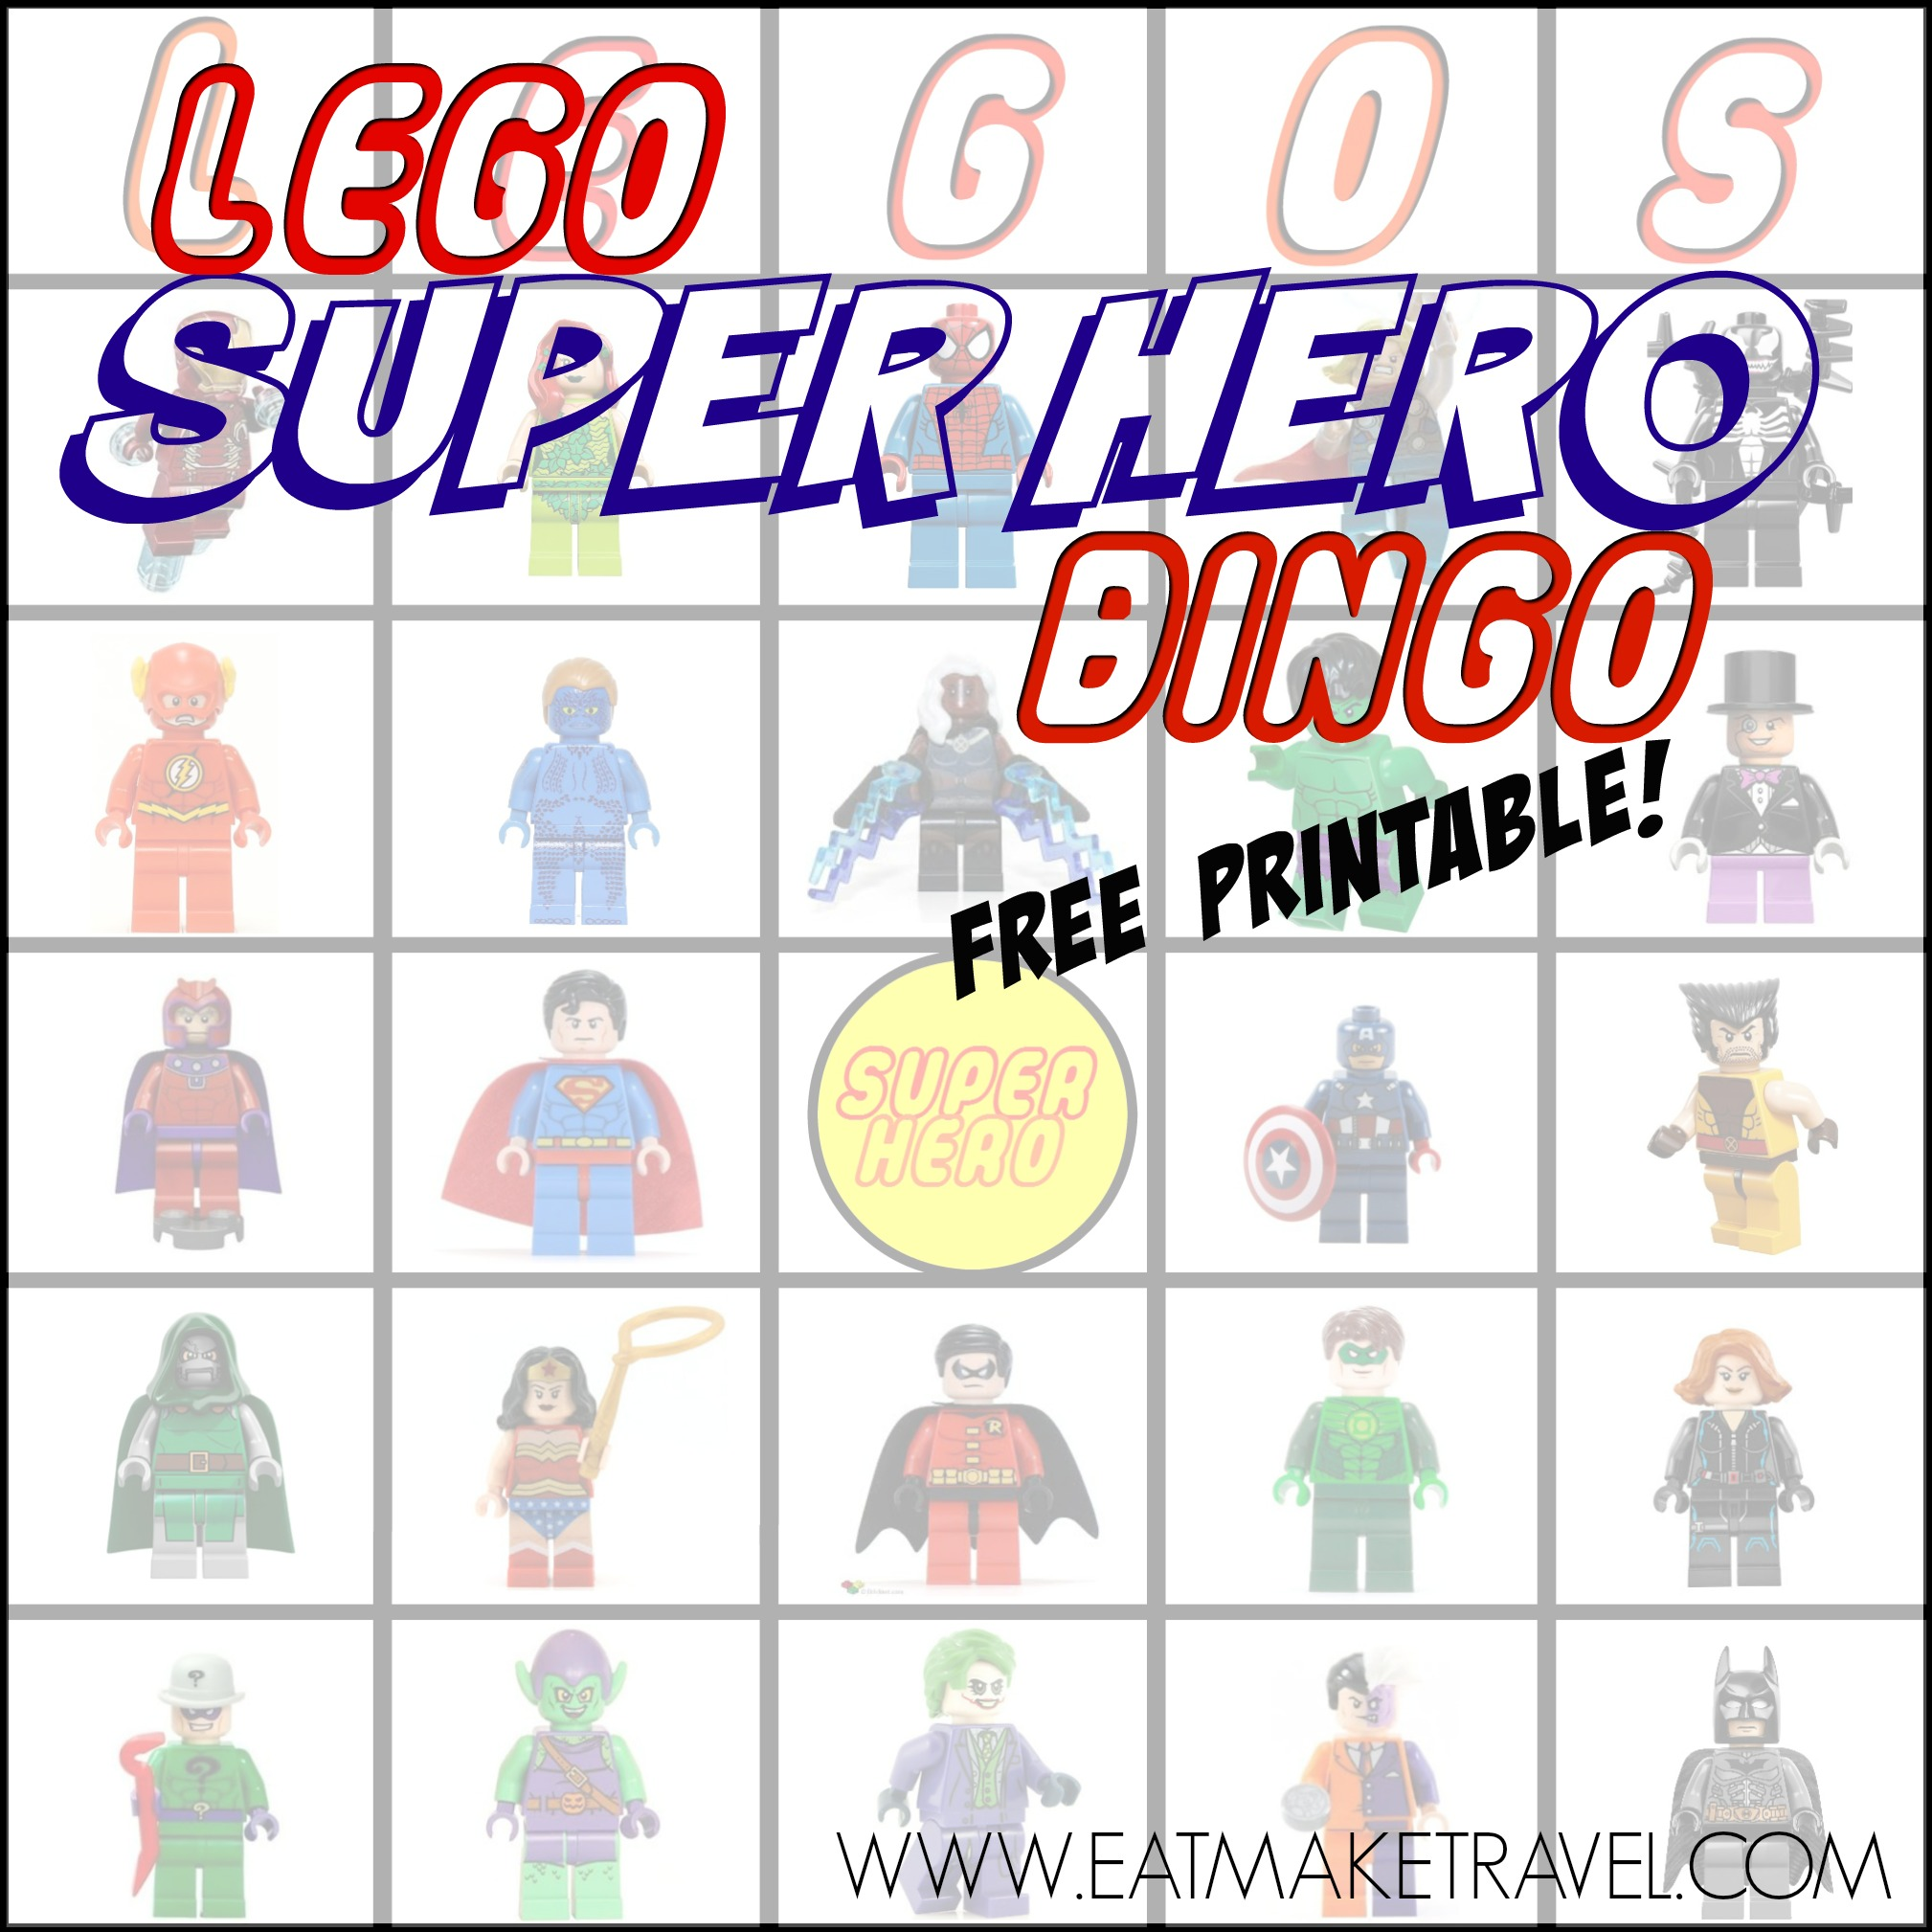 Super Hero Lego Bingo (FREE PRINTABLE)